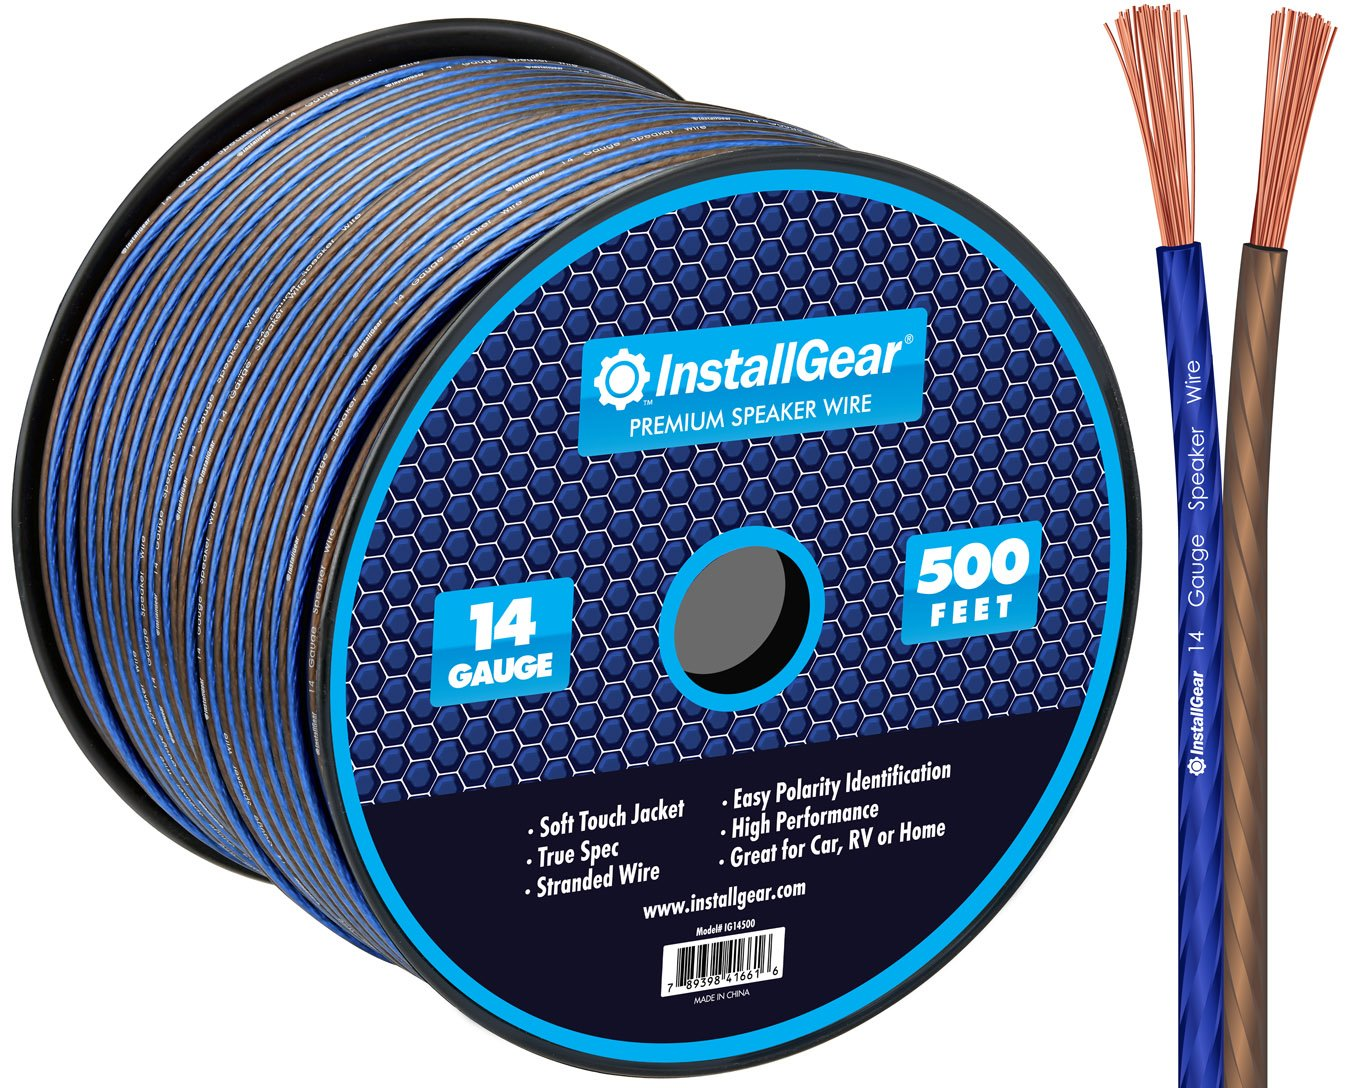 InstallGear 14 Gauge AWG 500ft Speaker Wire True Spec and Soft Touch Cable by InstallGear